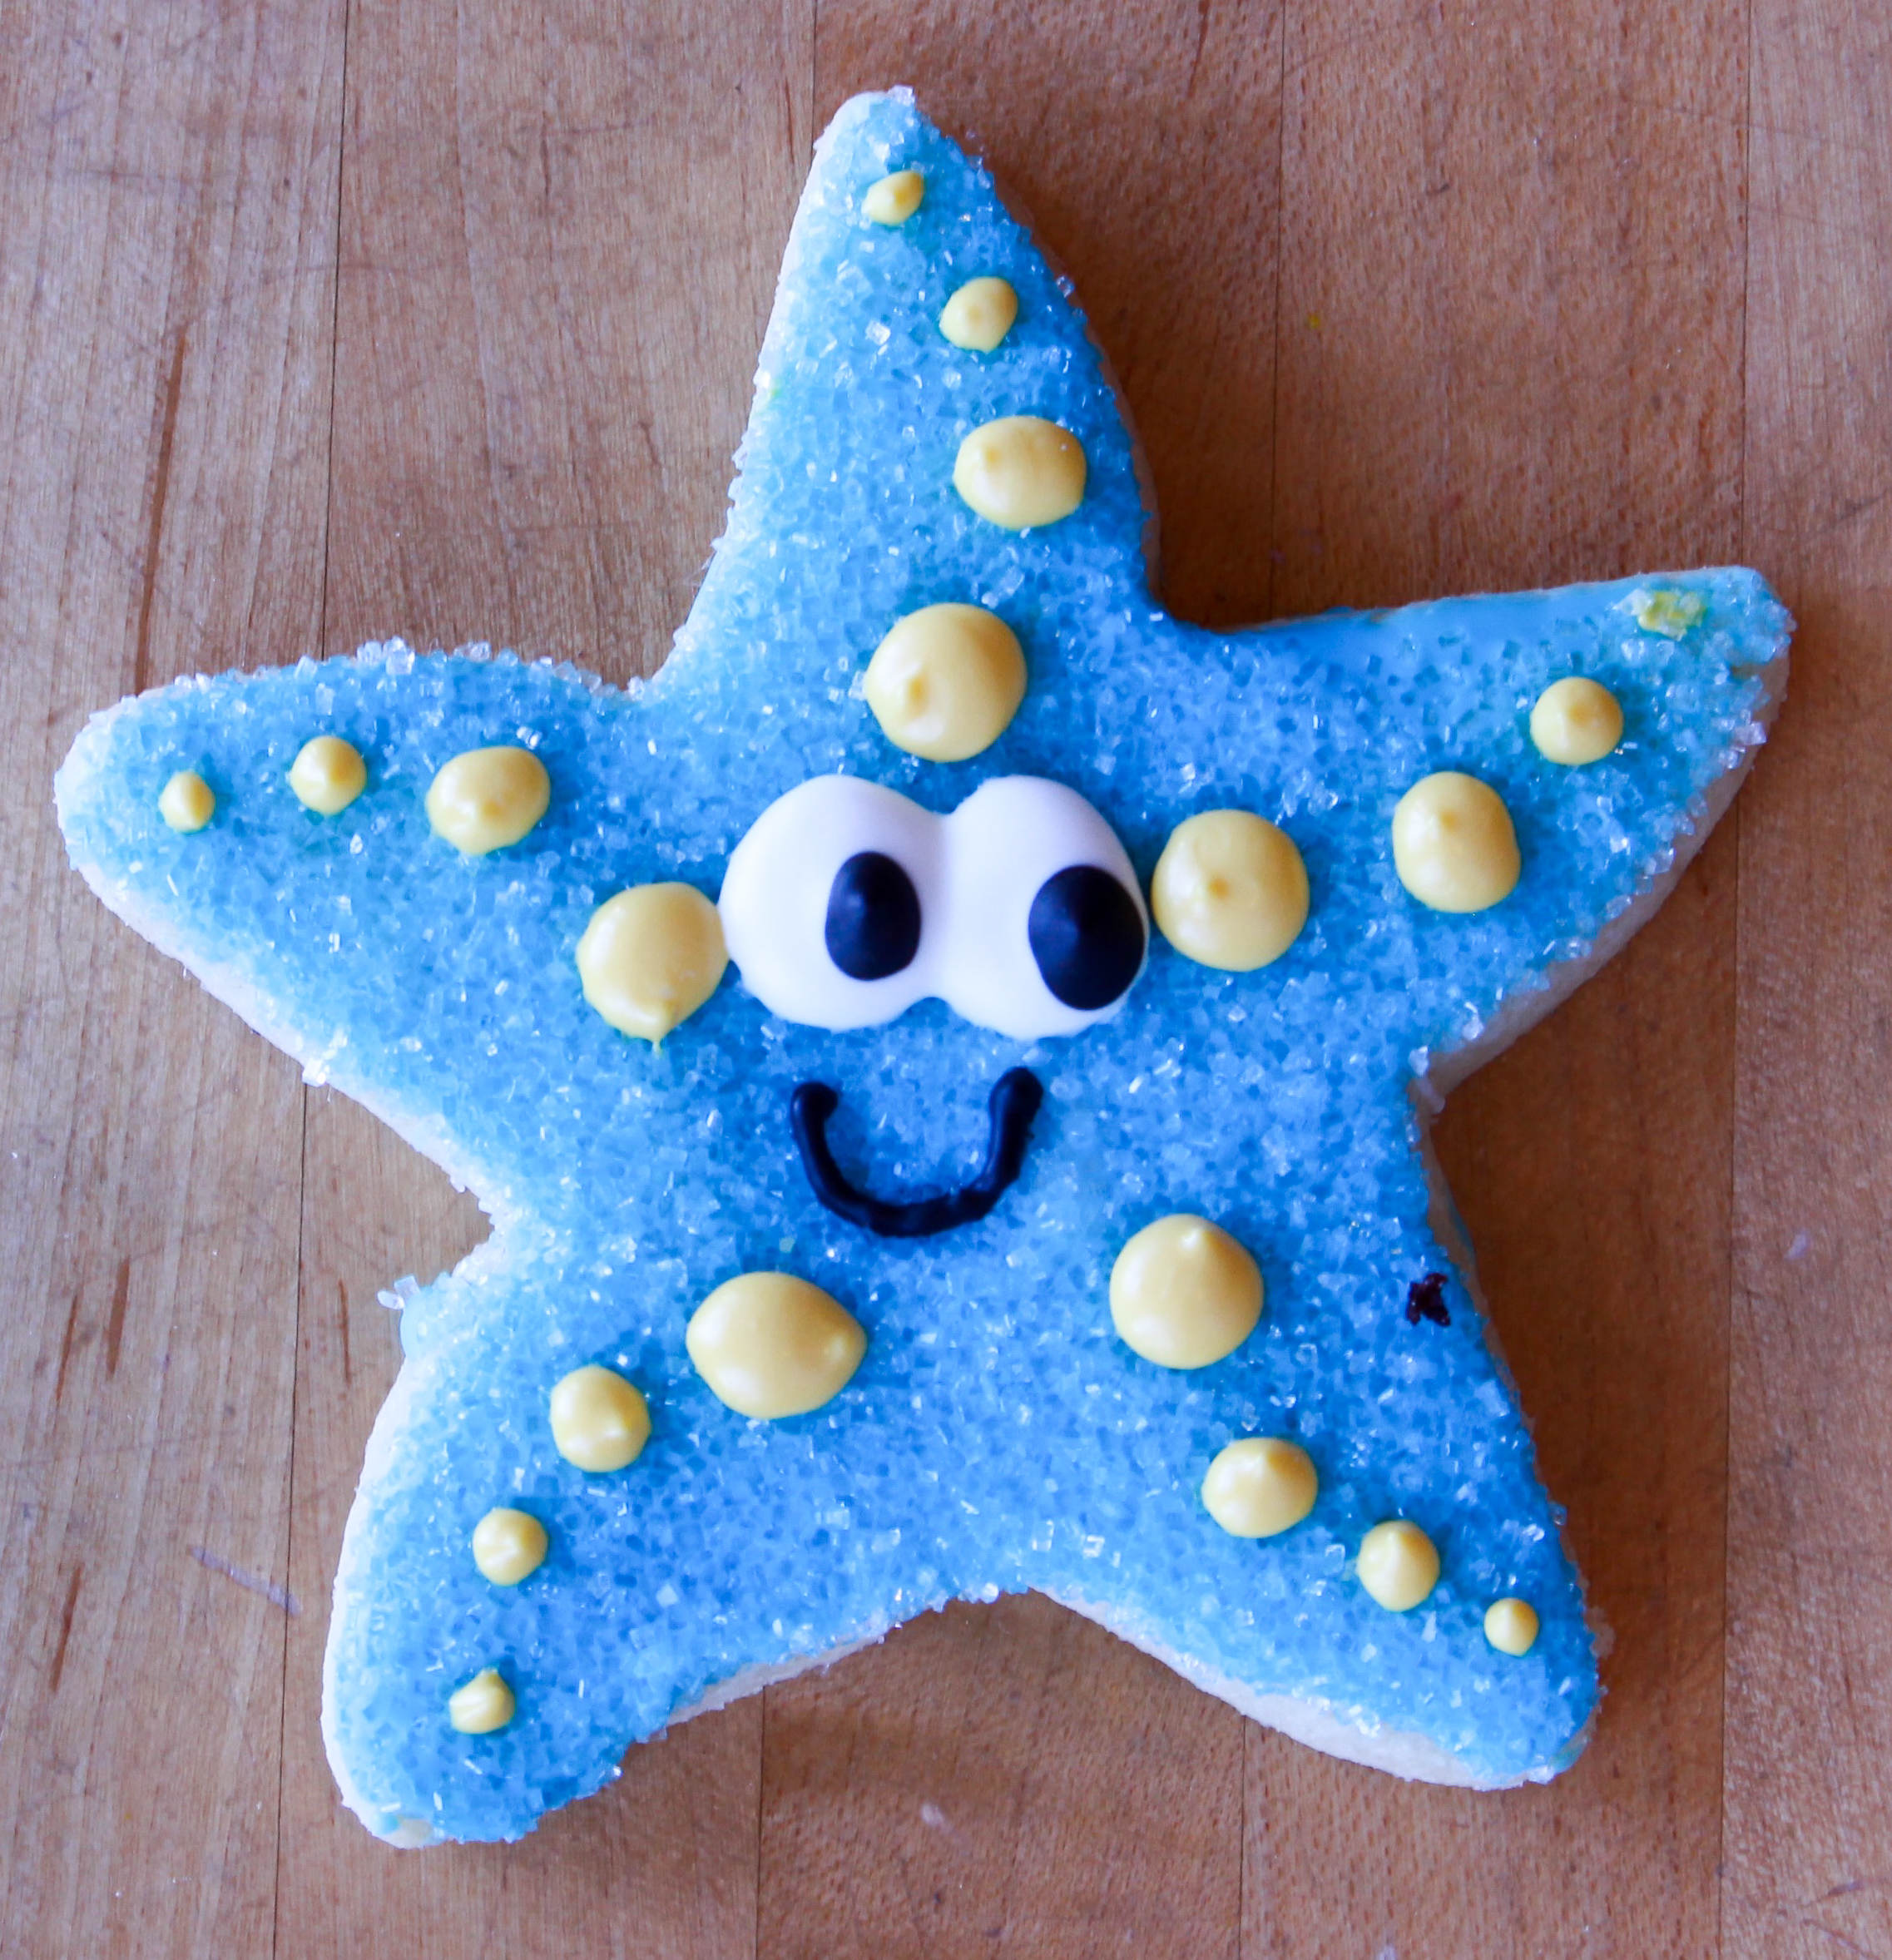 Sea Star in blue